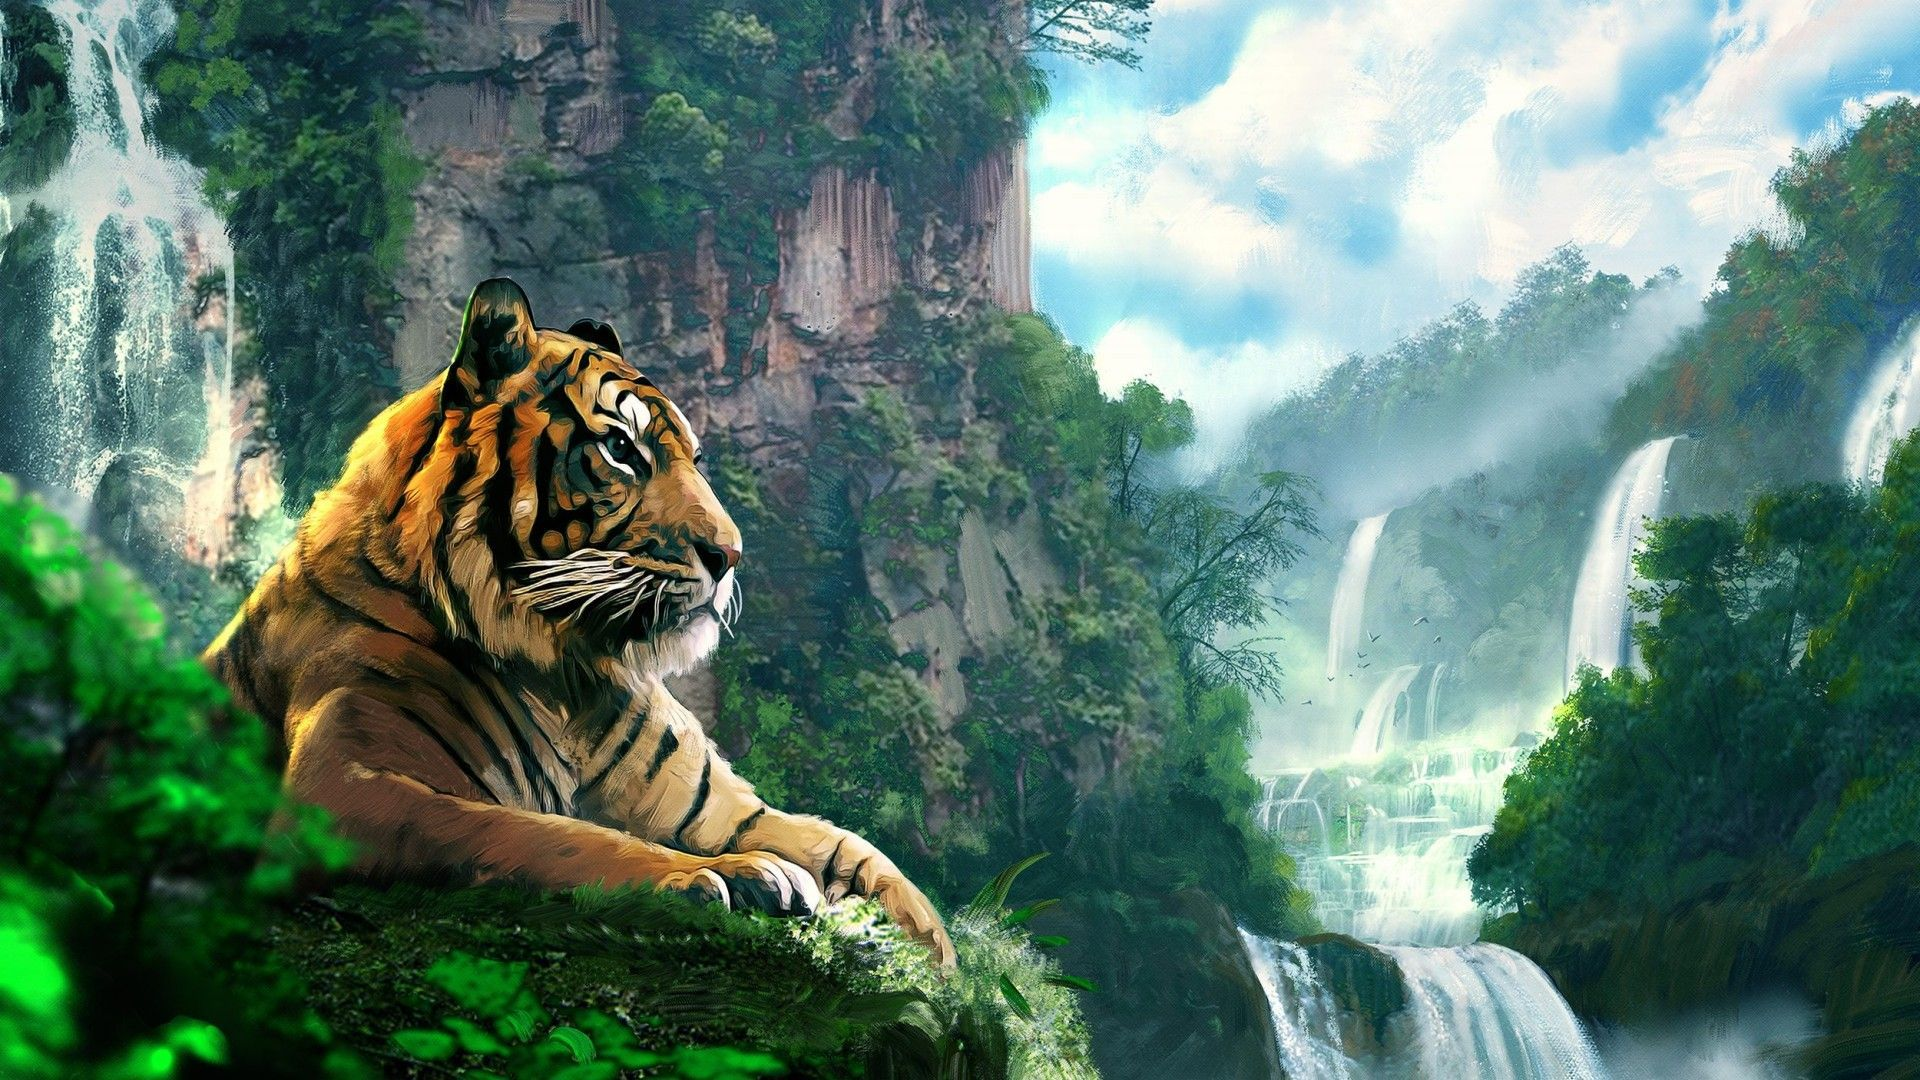 Tiger Art Painting Wallpaper HD Free Download For Desktop